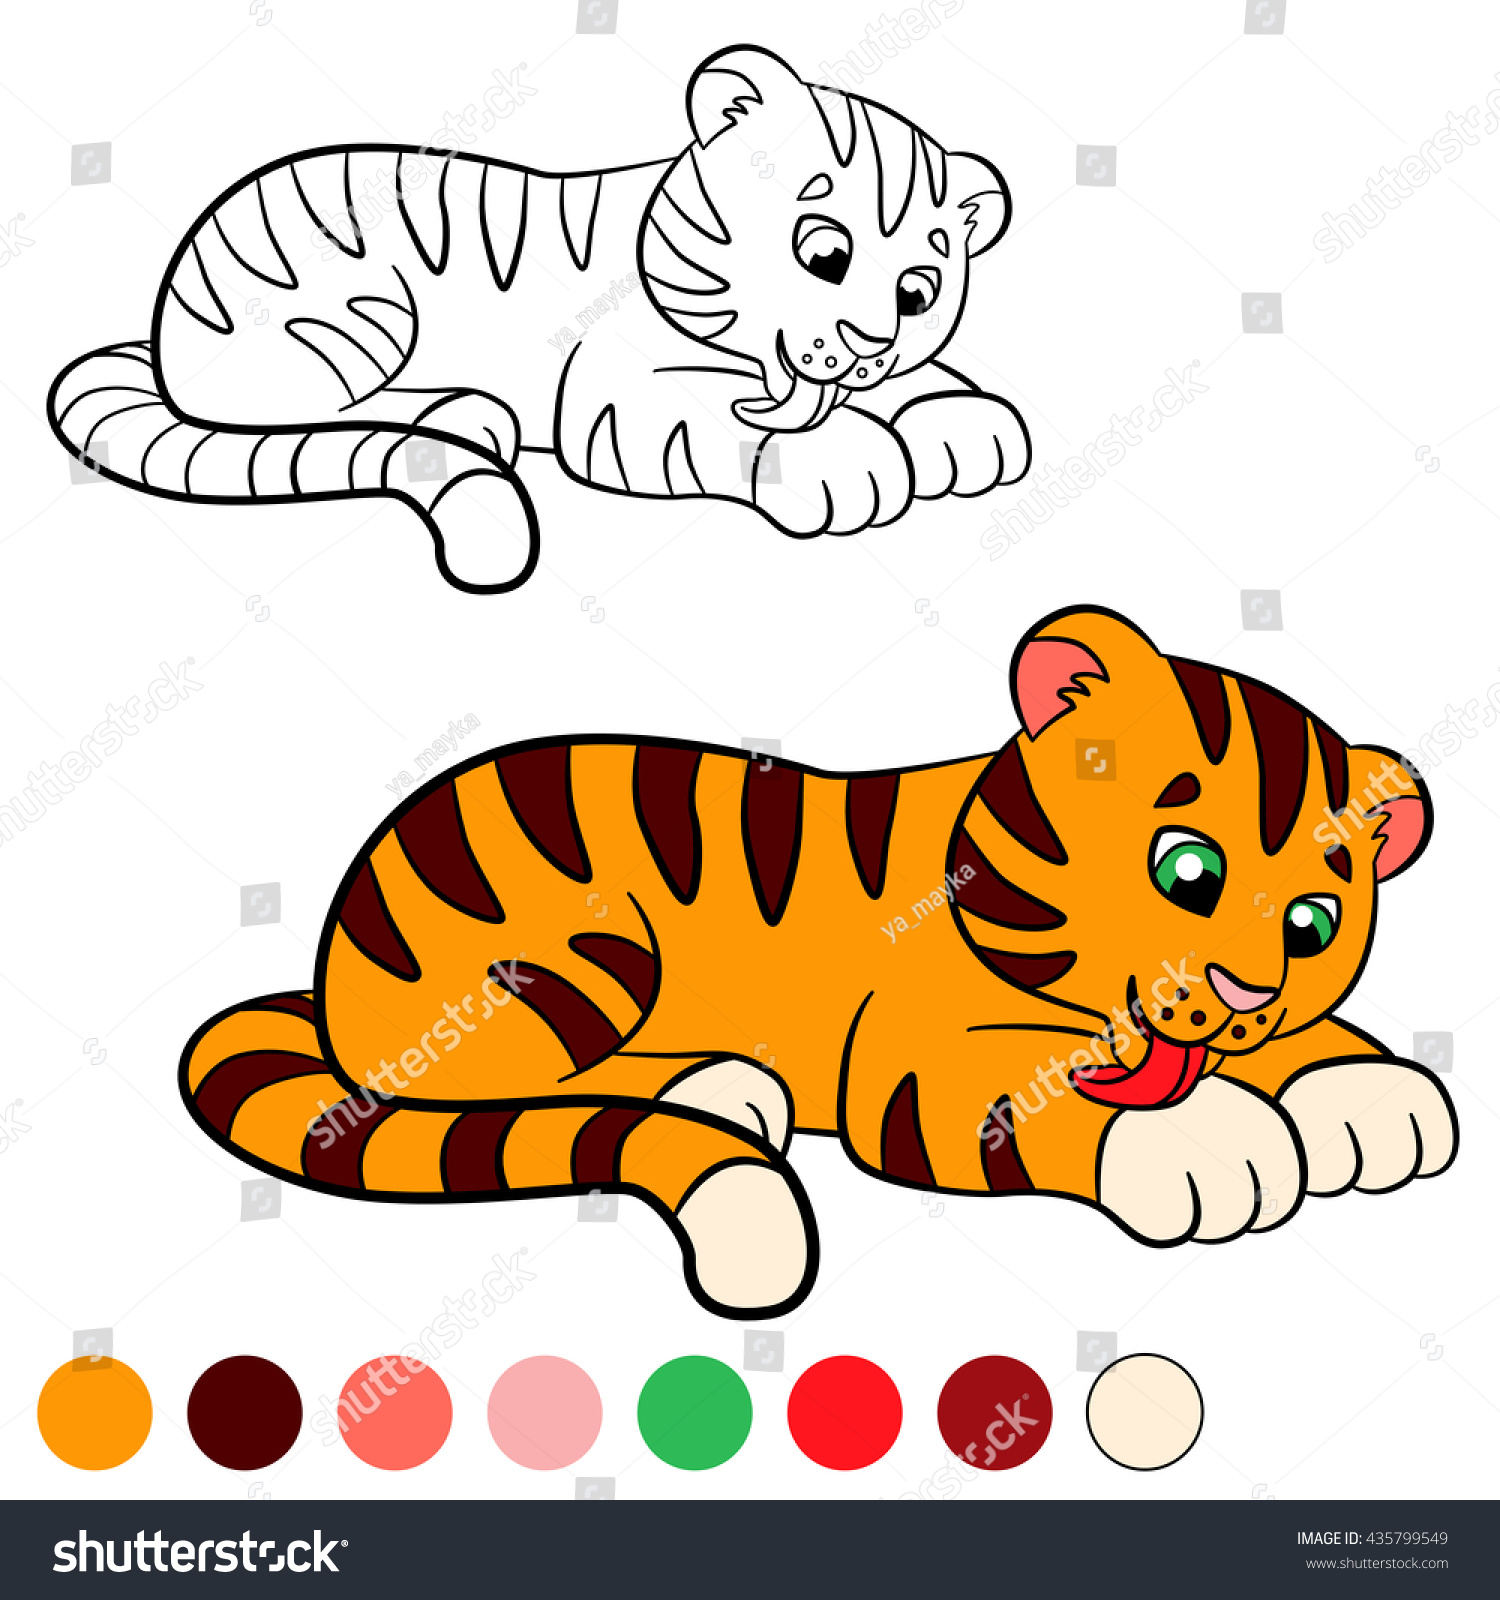 Lisa Frank Tiger Coloring Pages For Kids   Lisa frank coloring ...   1600x1500